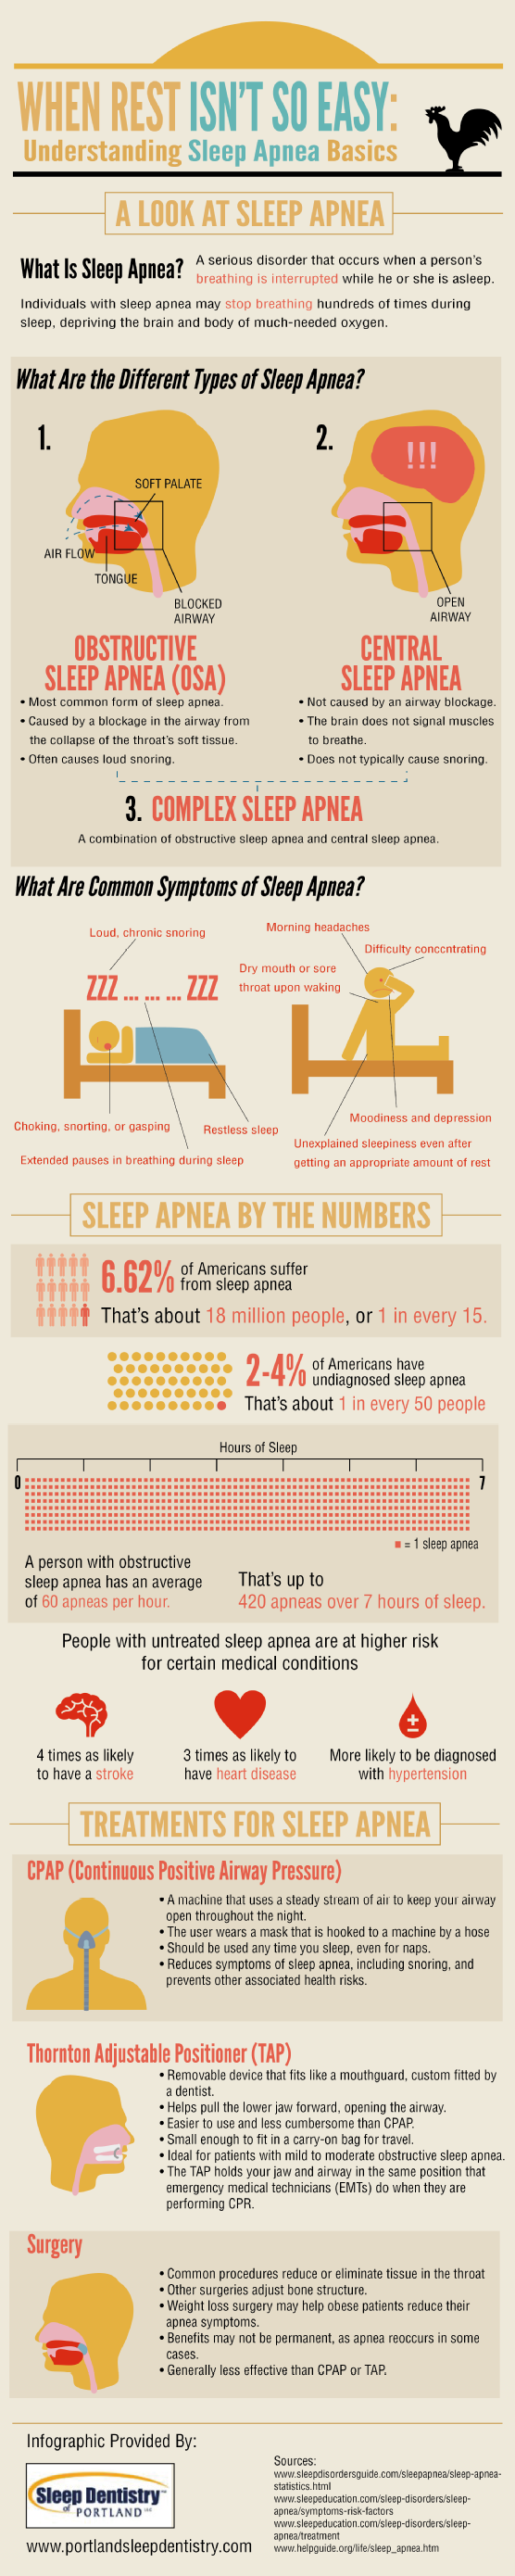 In one 7-hour period of sleep, a person with obstructive sleep apnea can have as many as 420 apneas. This infographic from a dentist in Portland shows the risks associated with sleep apnea and suggests some treatments. Source: http://www.portlandsleepdentistry.com/643757/2013/02/11/when-rest-isnt-so-easy-understanding-sleep-apnea-basics-infographic.html